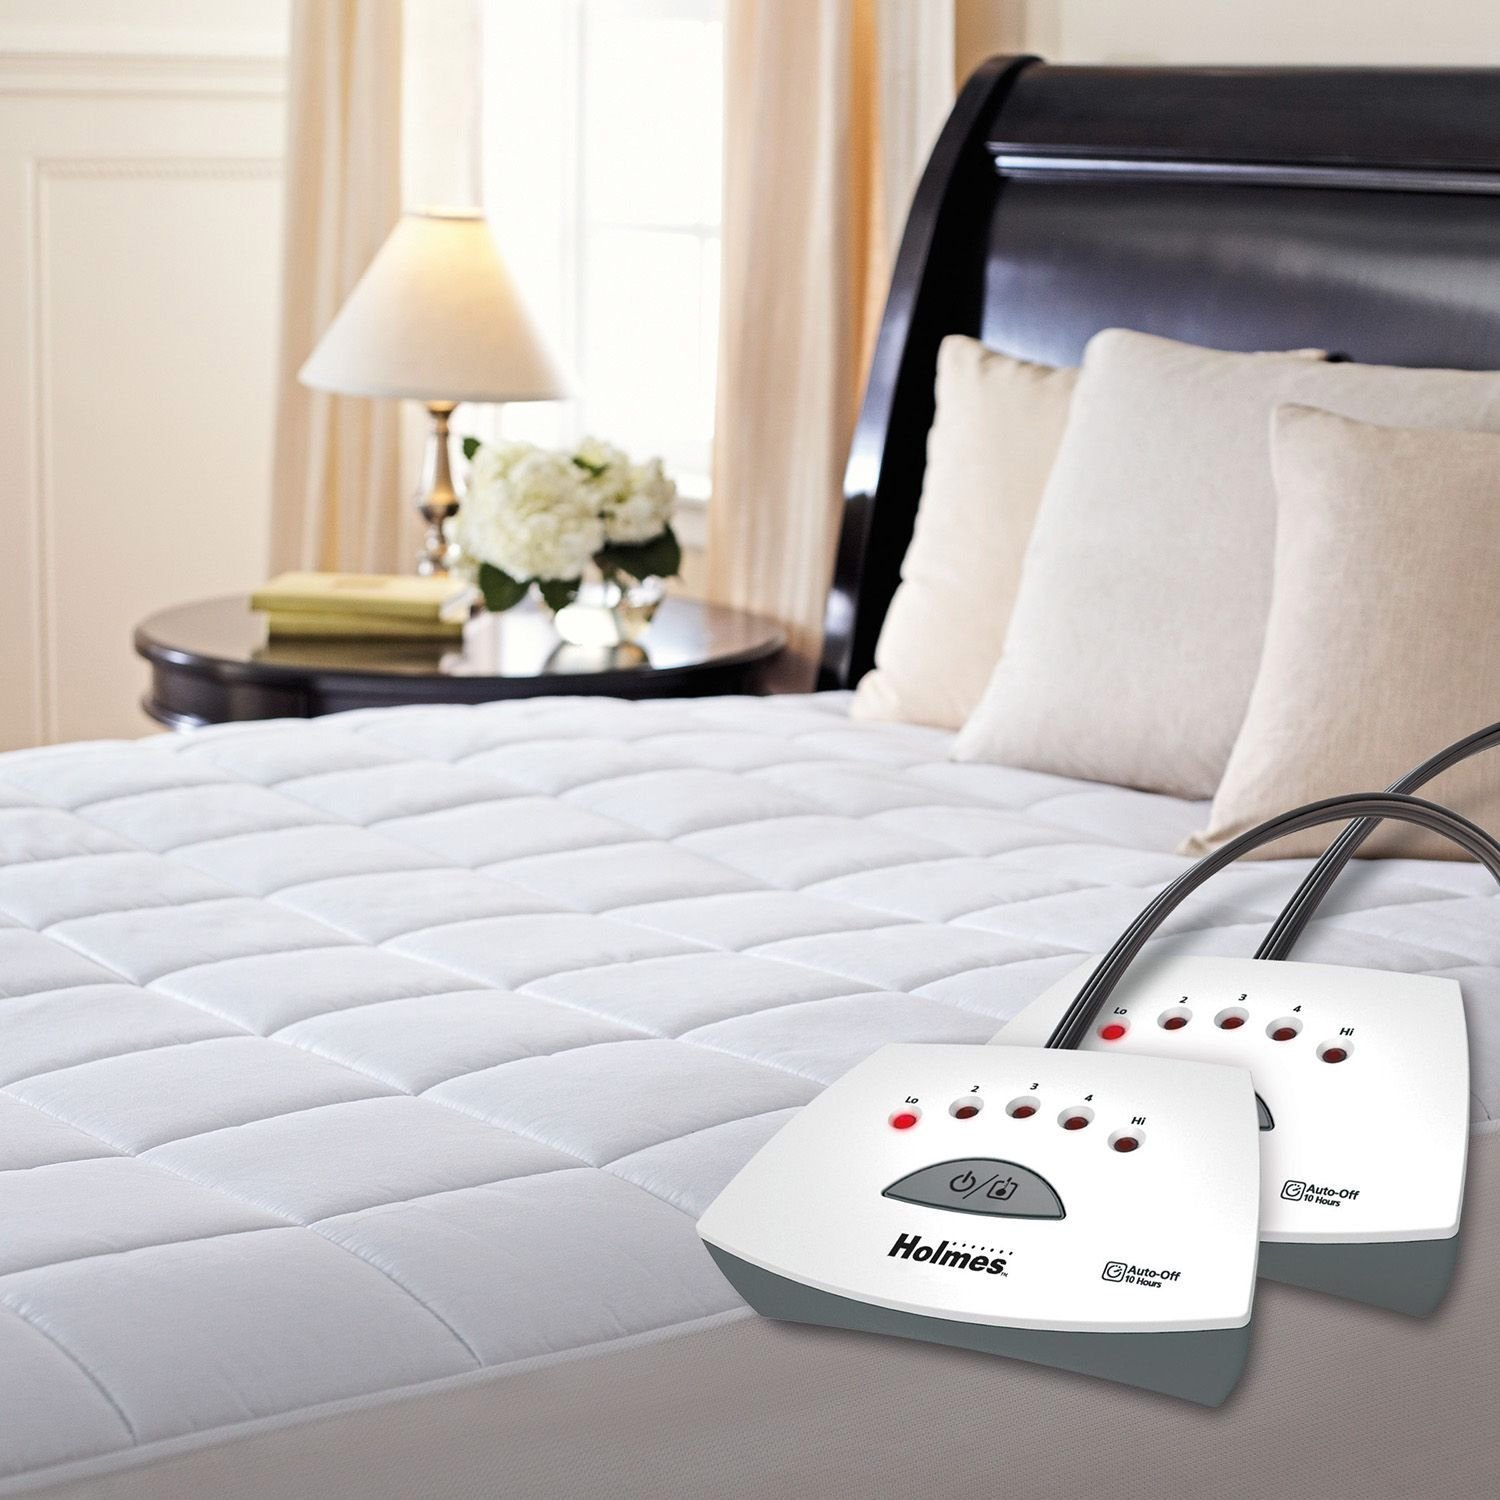 Holmes Premium Quilted Electric Heated Mattress Pad - Queen Size